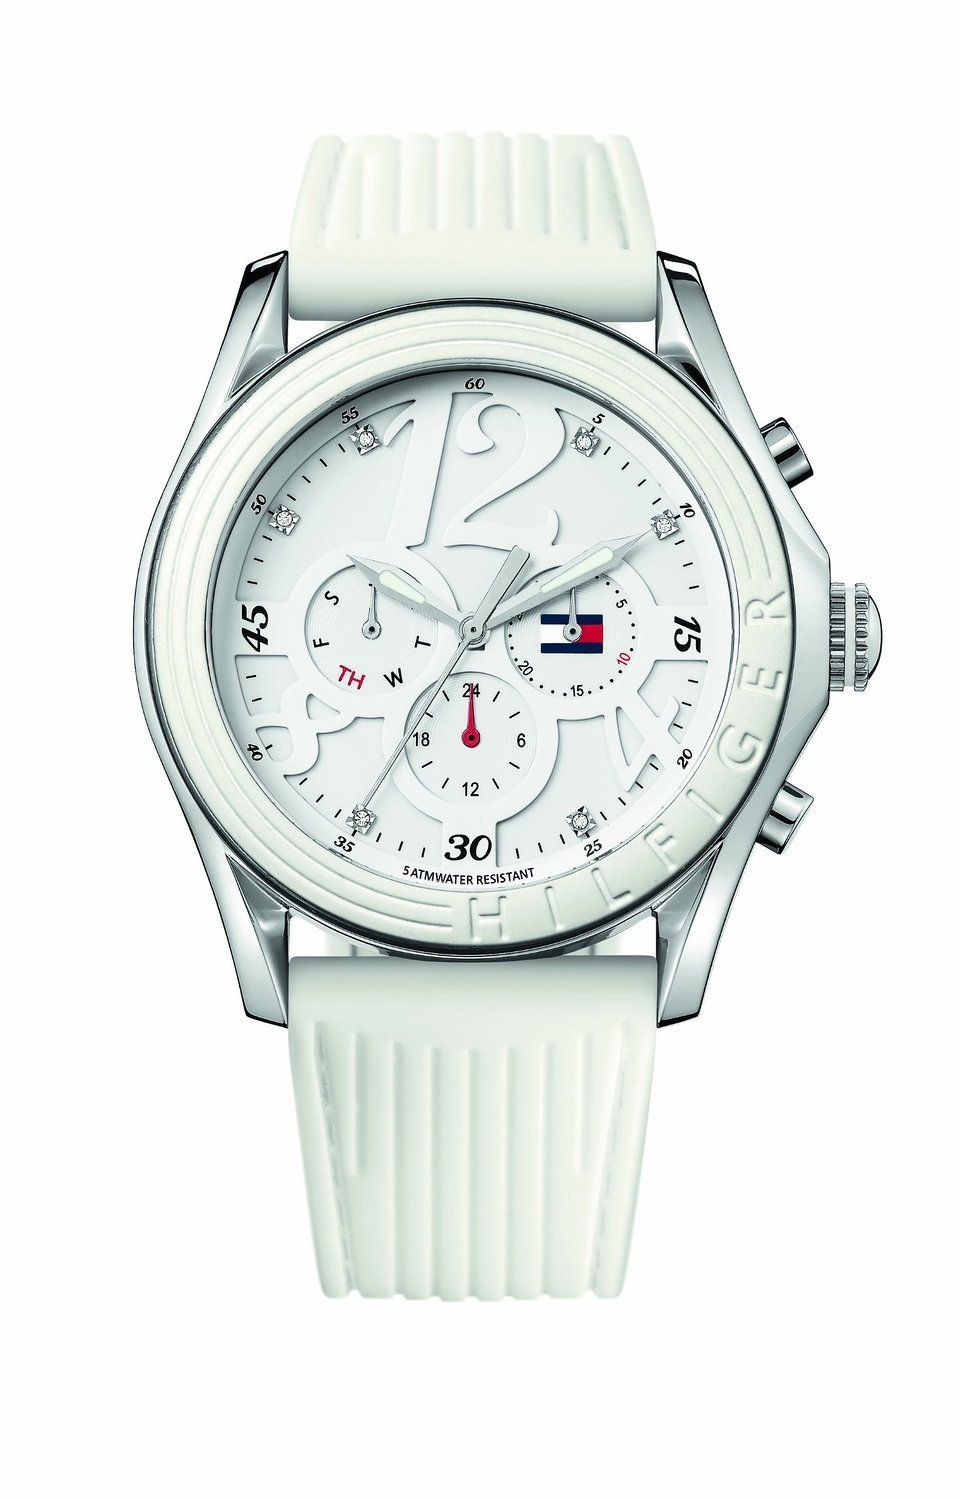 c48aaeea1d1 Buy Tommy Hilfiger Chronograph White Dial Women s Watch - TH1780968J Online  at Low Prices in India - Amazon.in